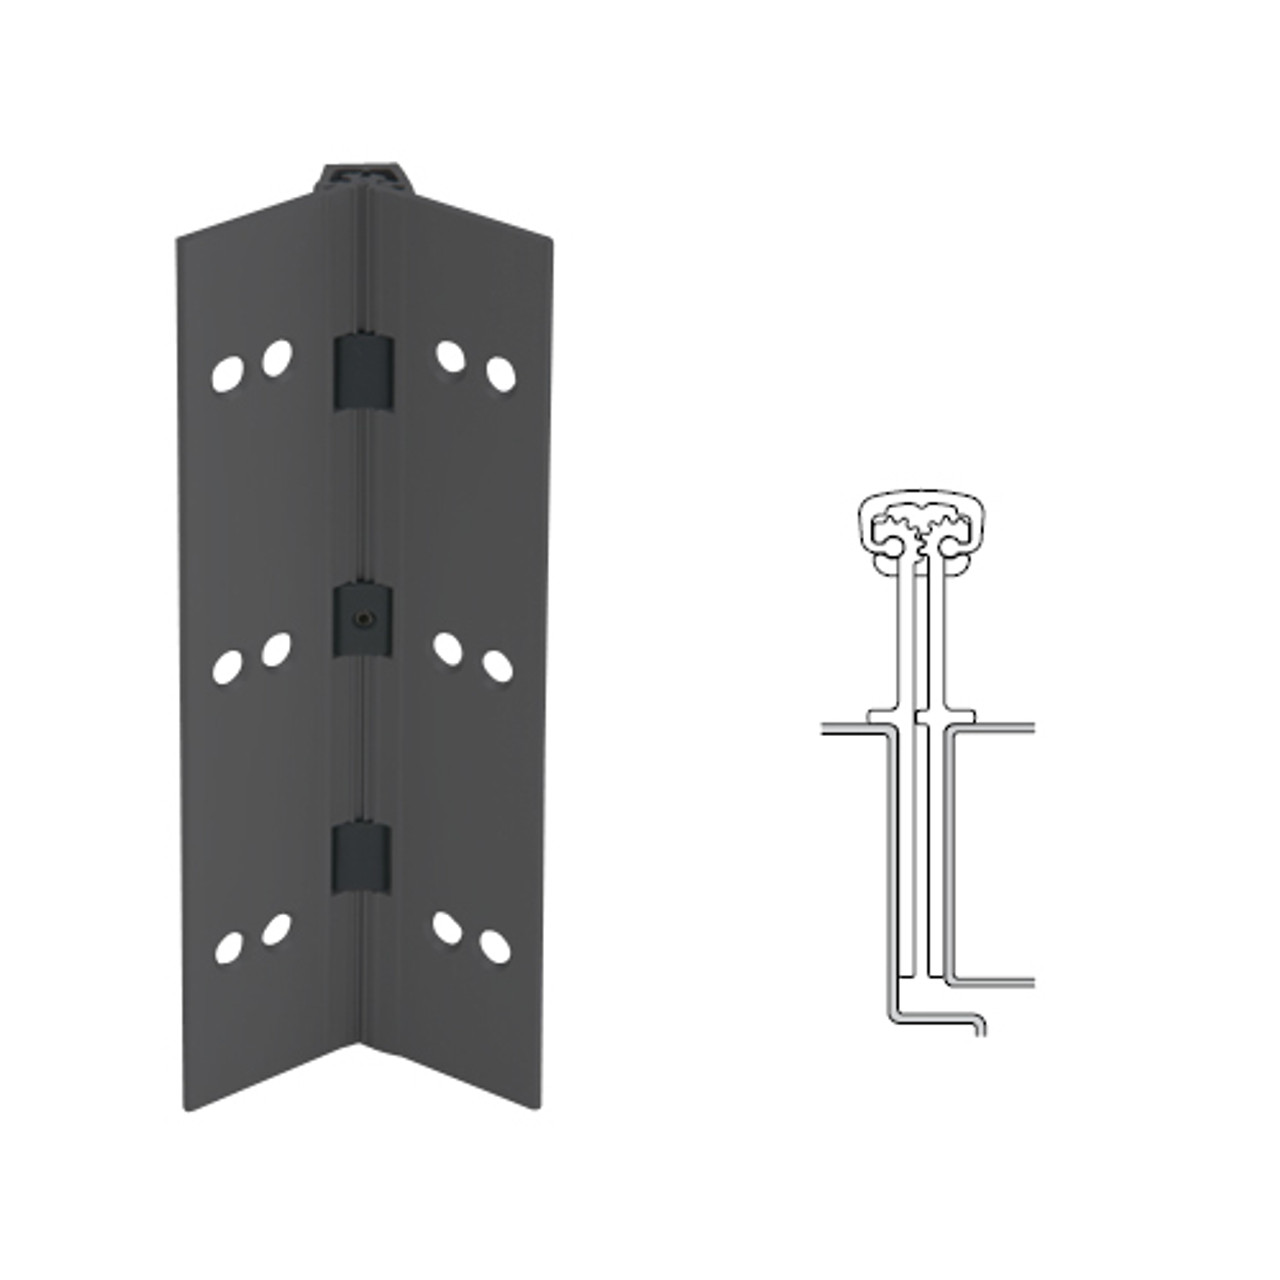 040XY-315AN-85-SECWDWD IVES Full Mortise Continuous Geared Hinges with Security Screws - Hex Pin Drive in Anodized Black